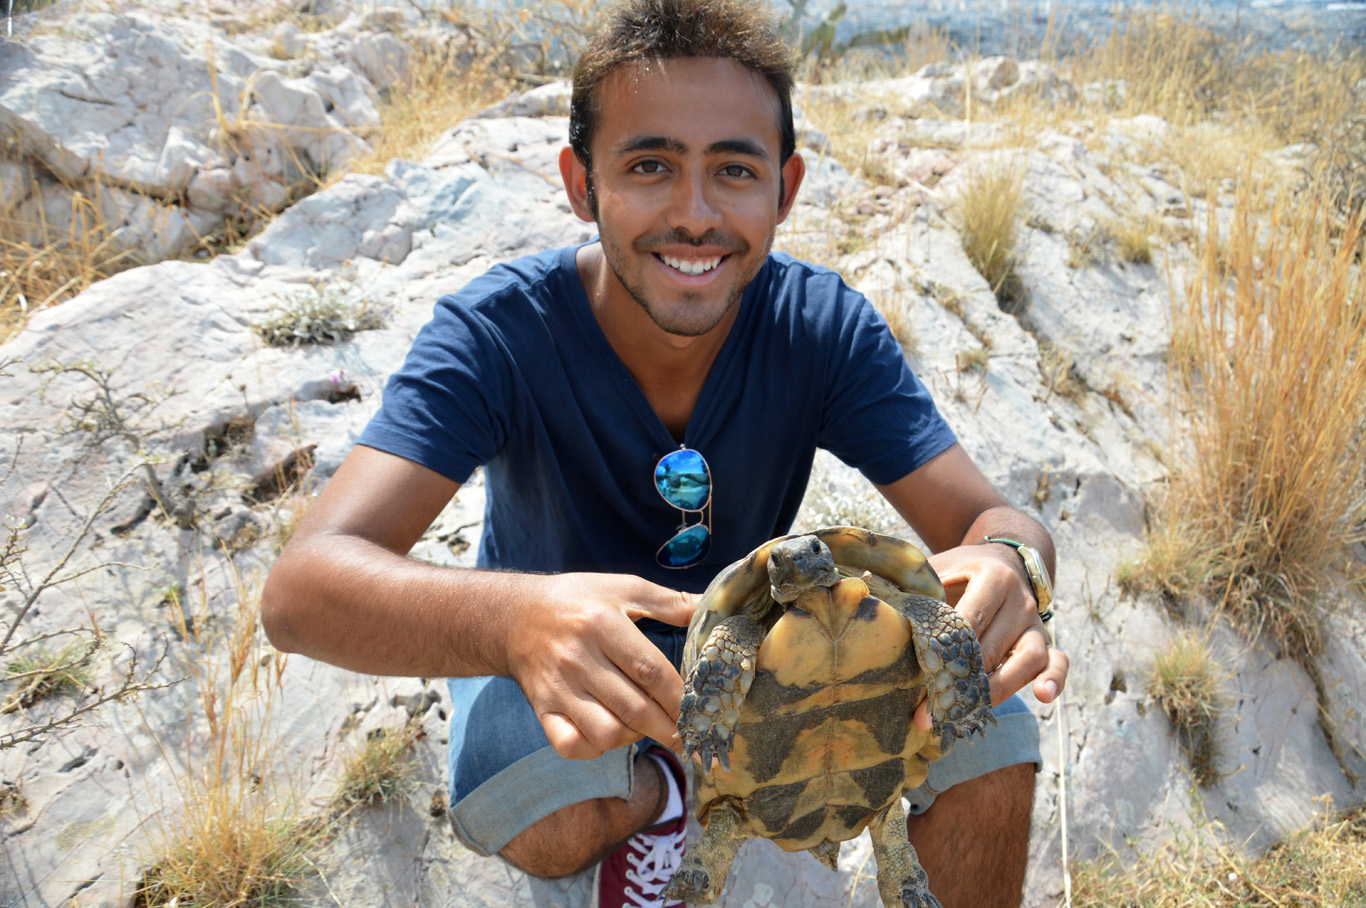 With the tortoise